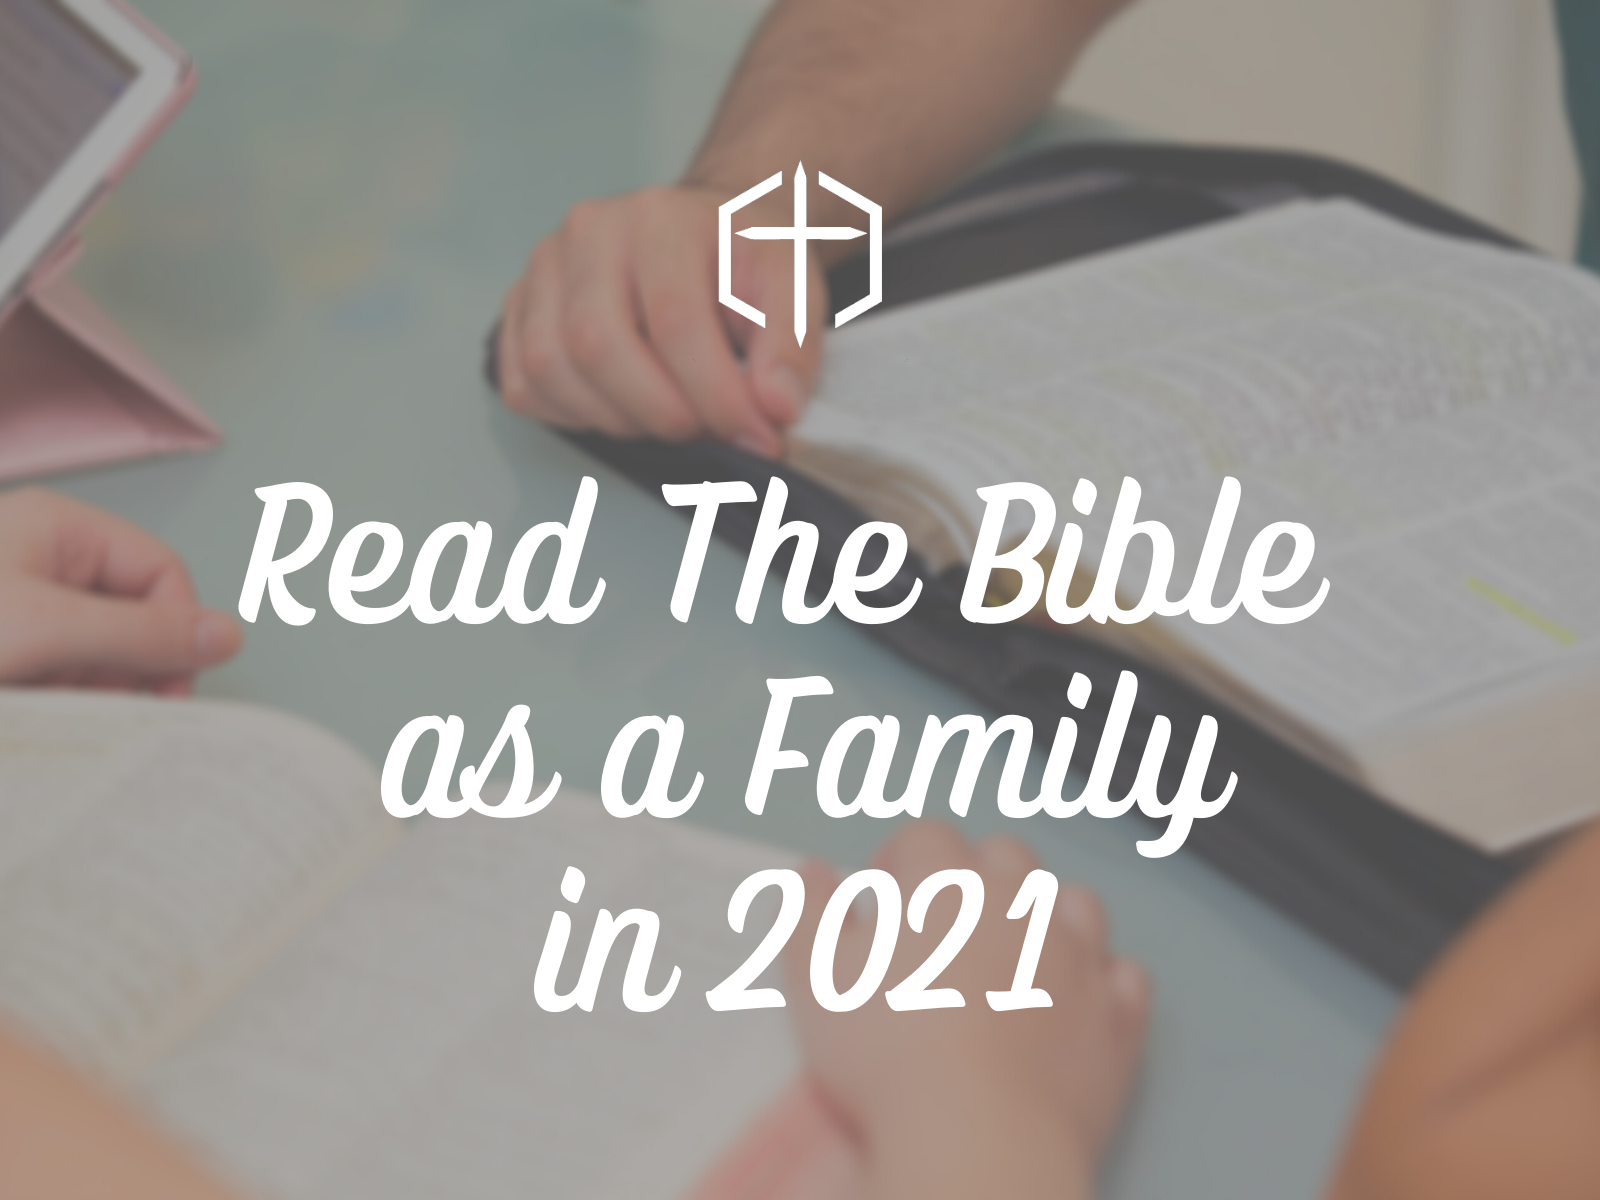 Read The Bible in 2021 Web